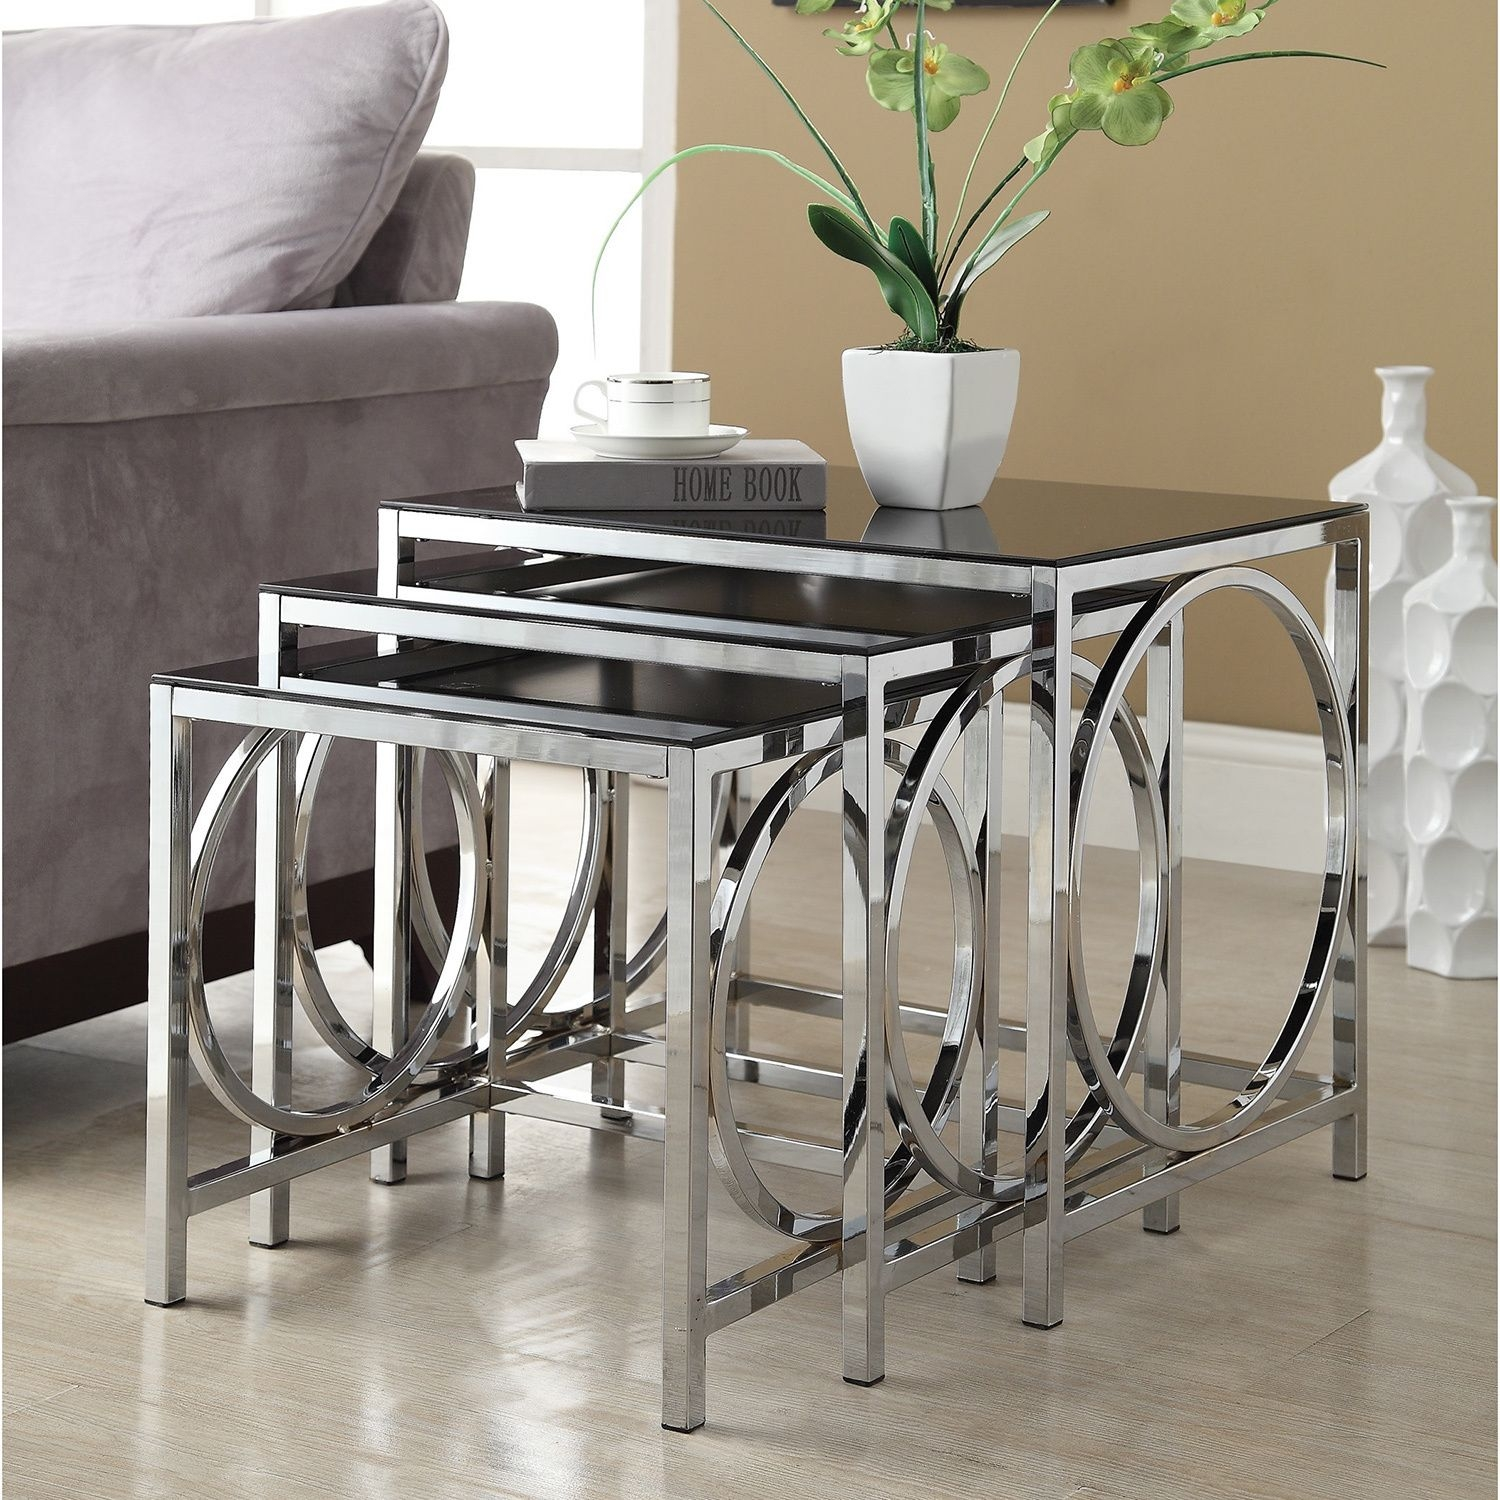 Chrome end tables 1